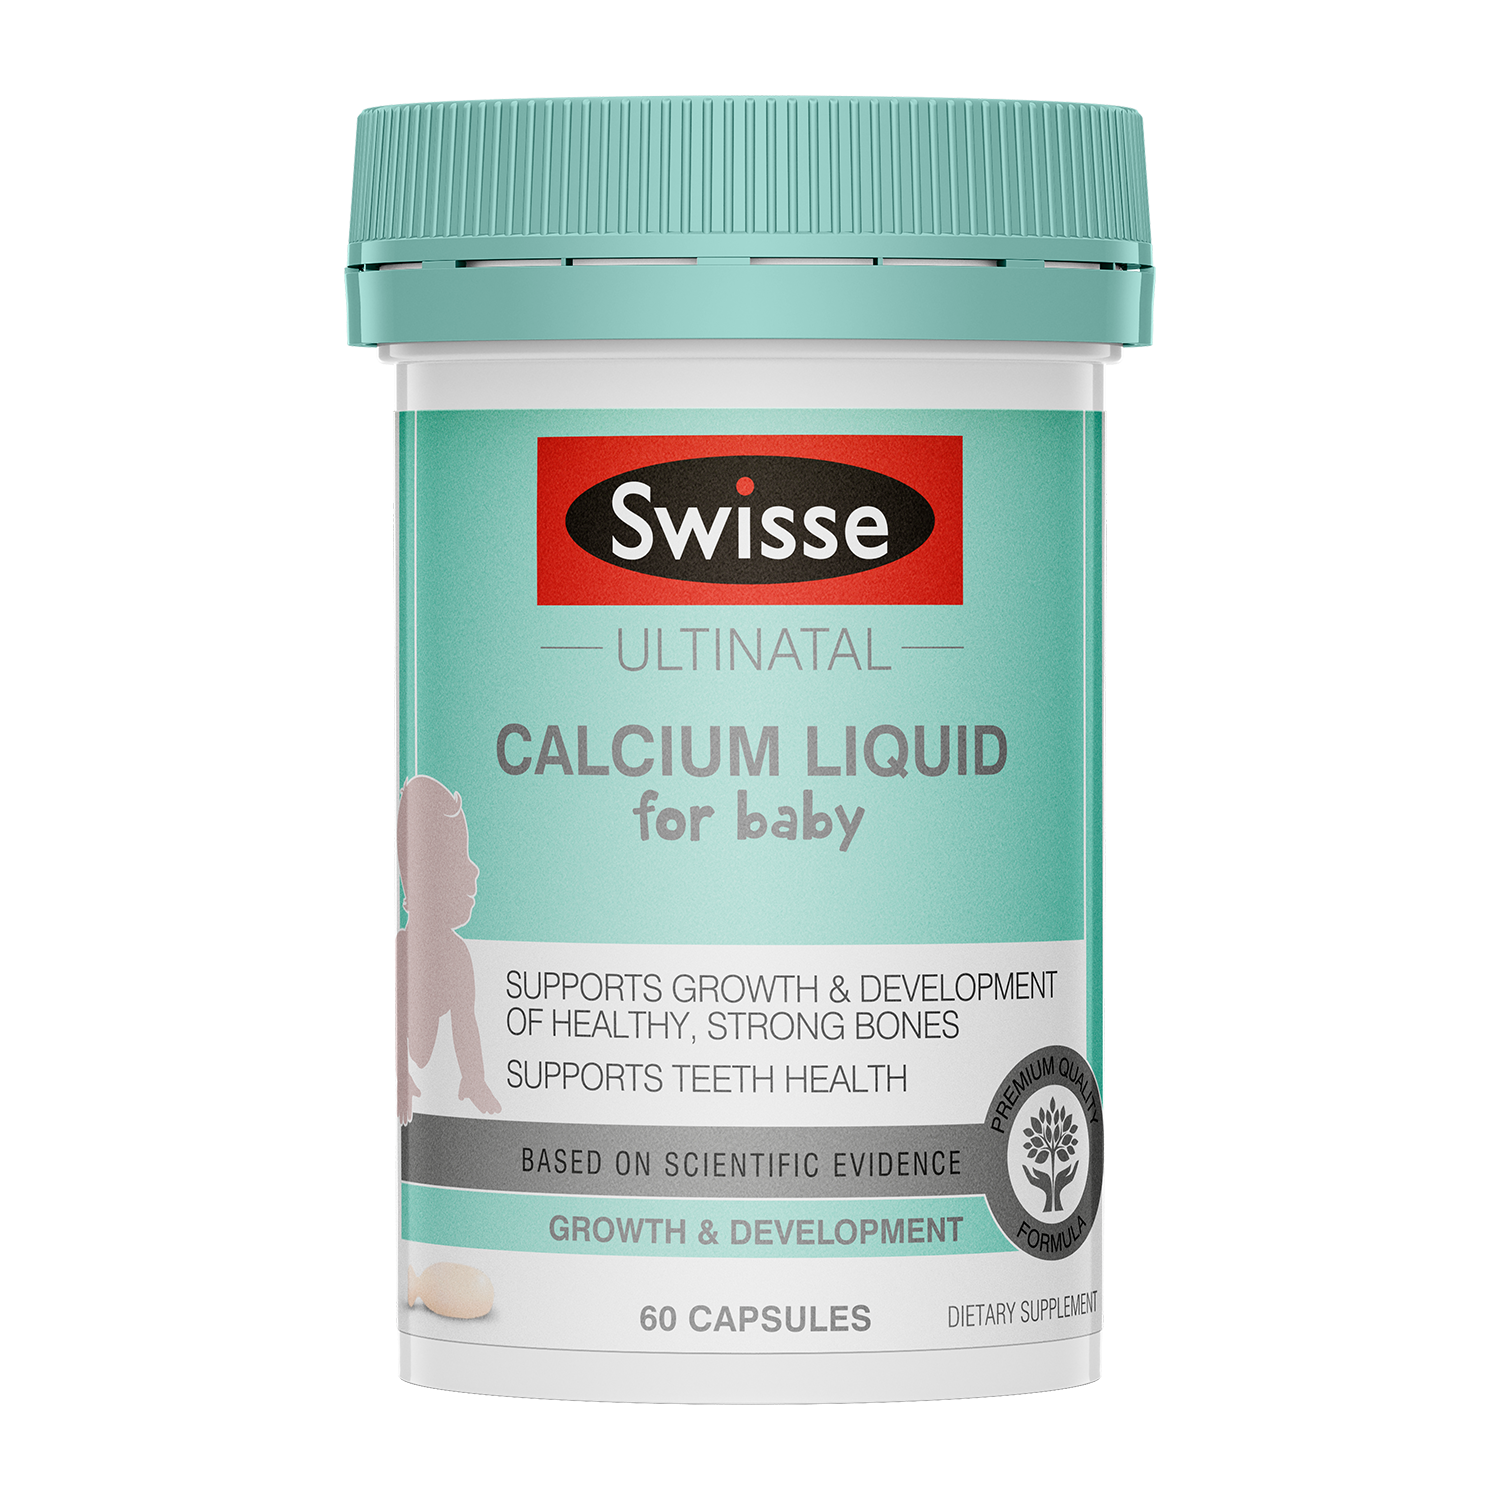 Swisse Ultinatal Calcium Liquid infant product 60 tabs product image